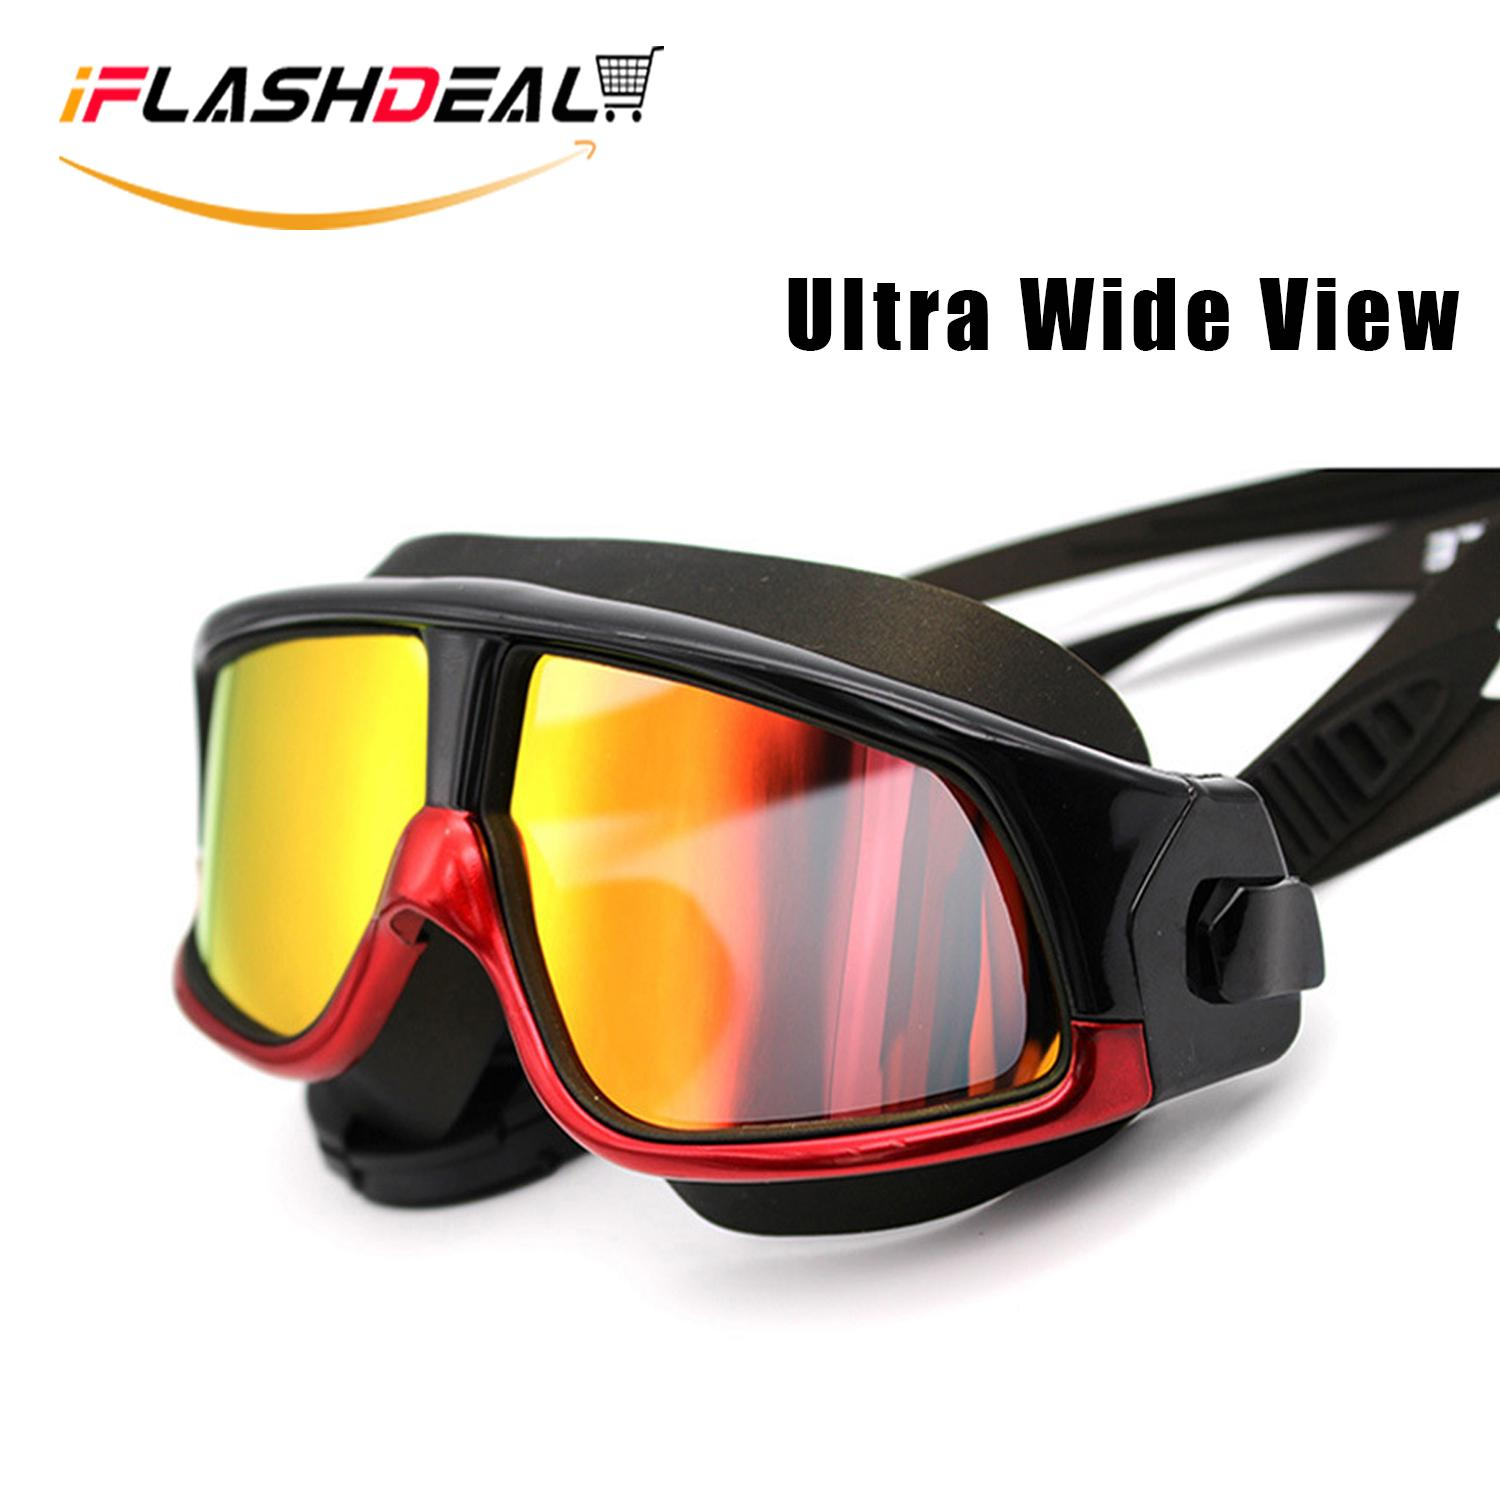 a17f98b5a55 iFlashDeal Large Frame Swim Goggles Colorful Swimming Glasses with  Anti-Fog